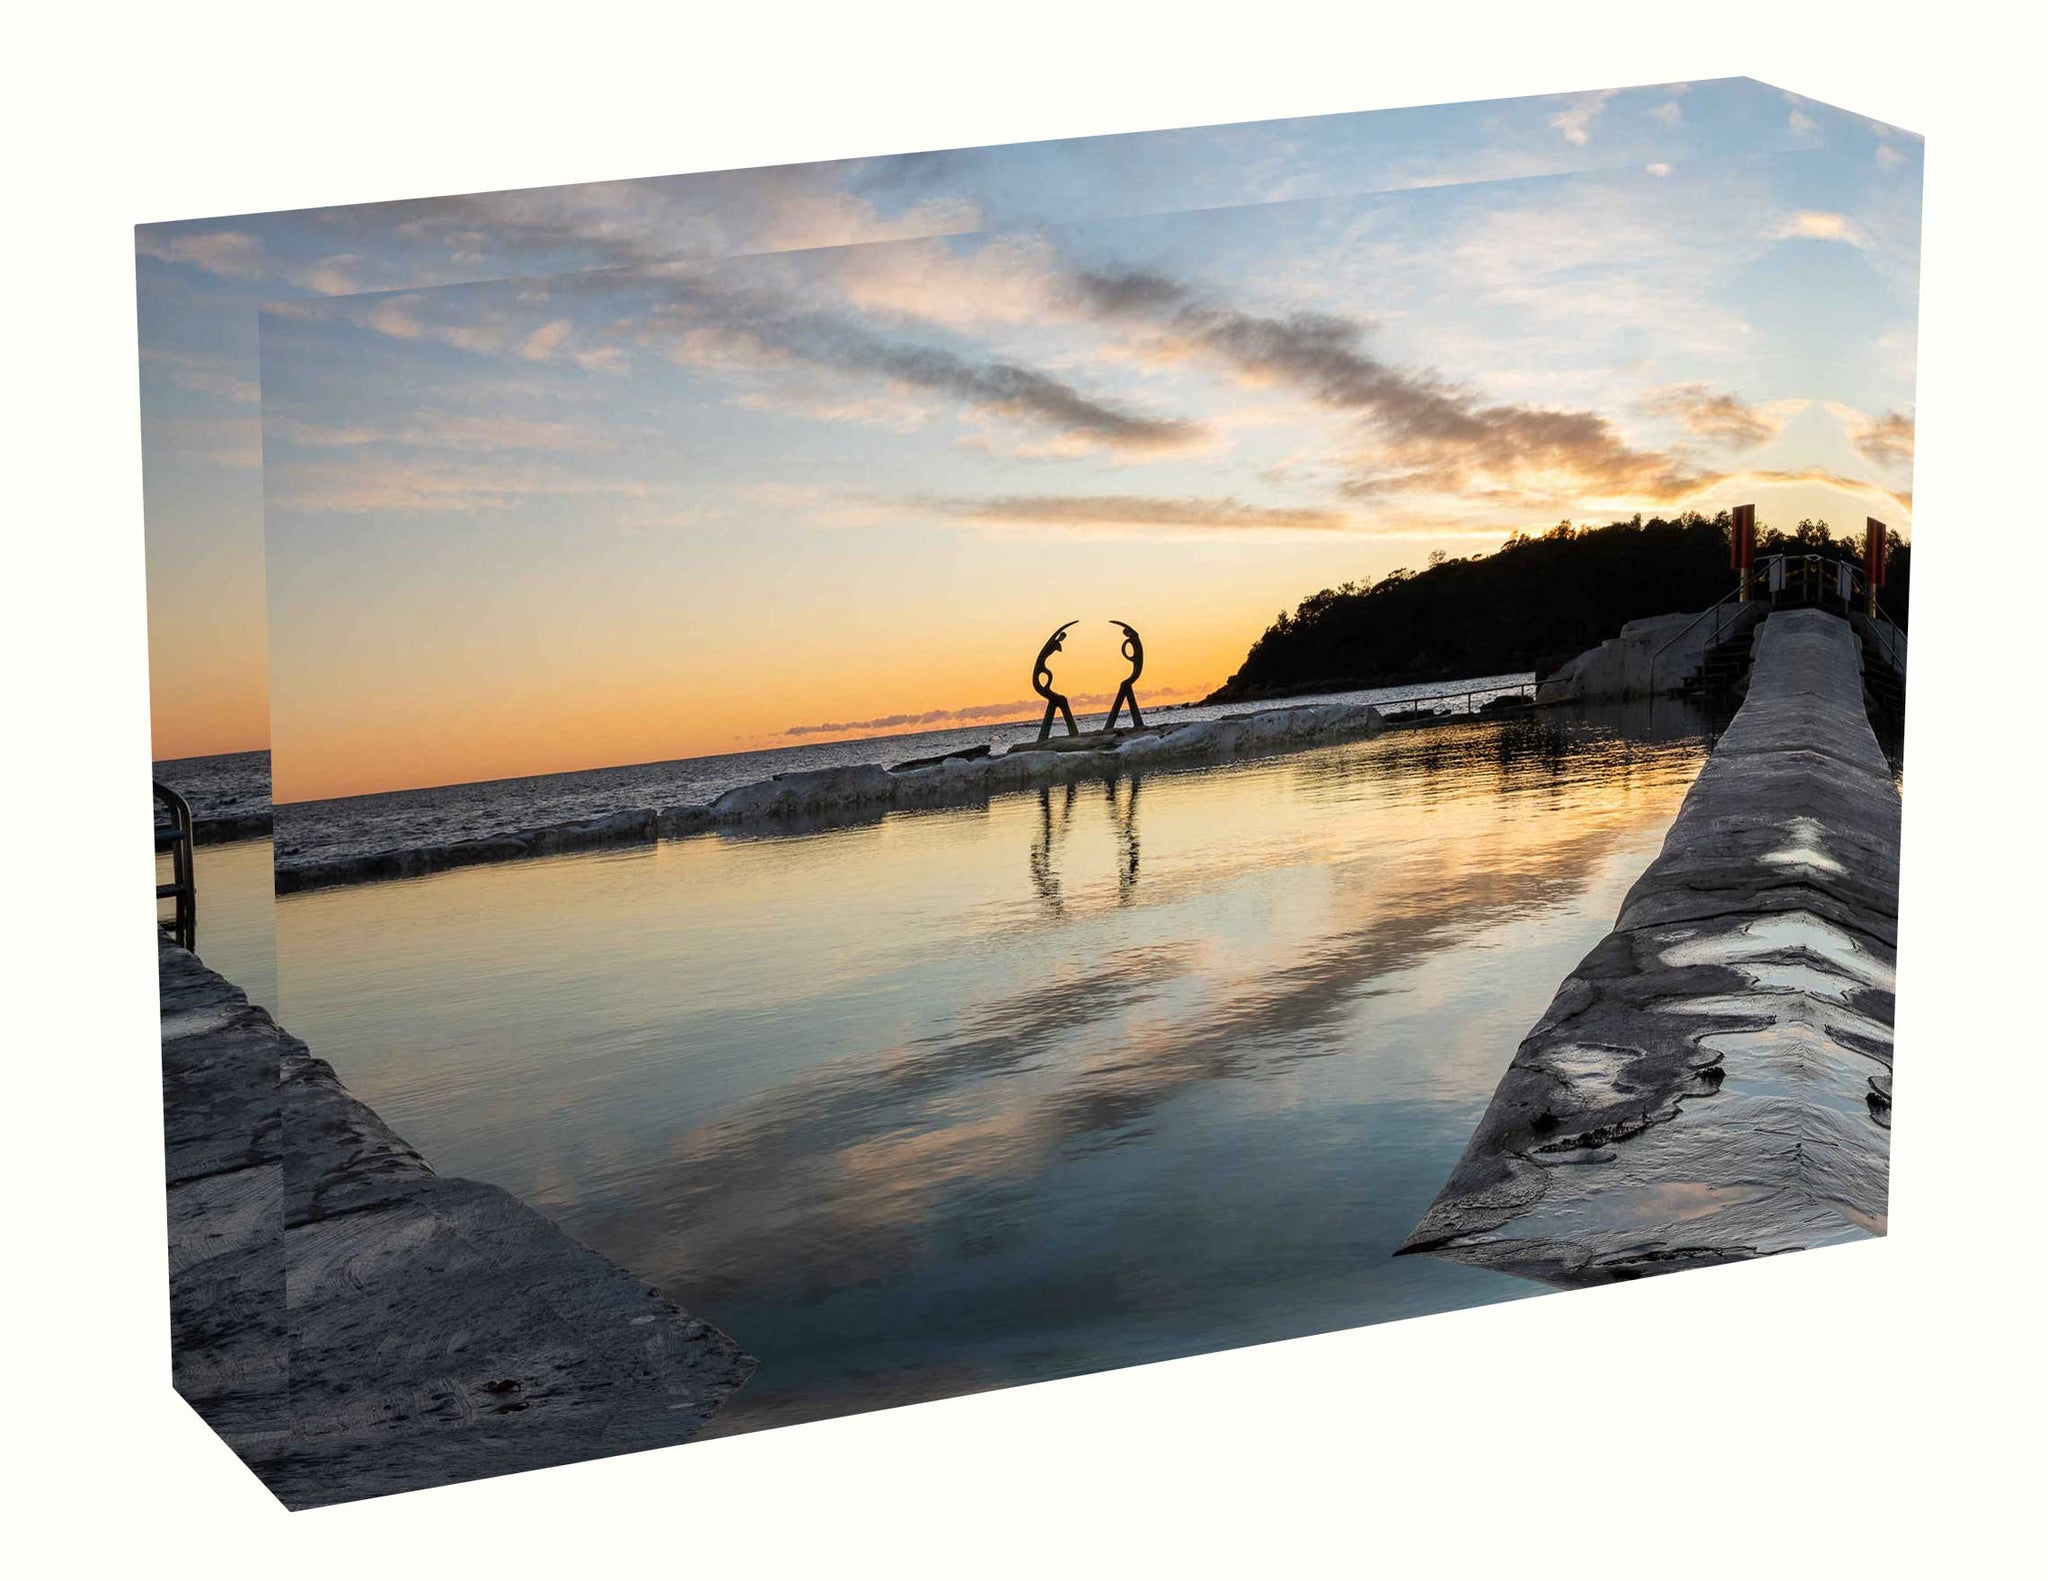 Acrylic block Sunrise photo from 2nd May 2020 at Fairy Bower Pool, Manly, Sydney